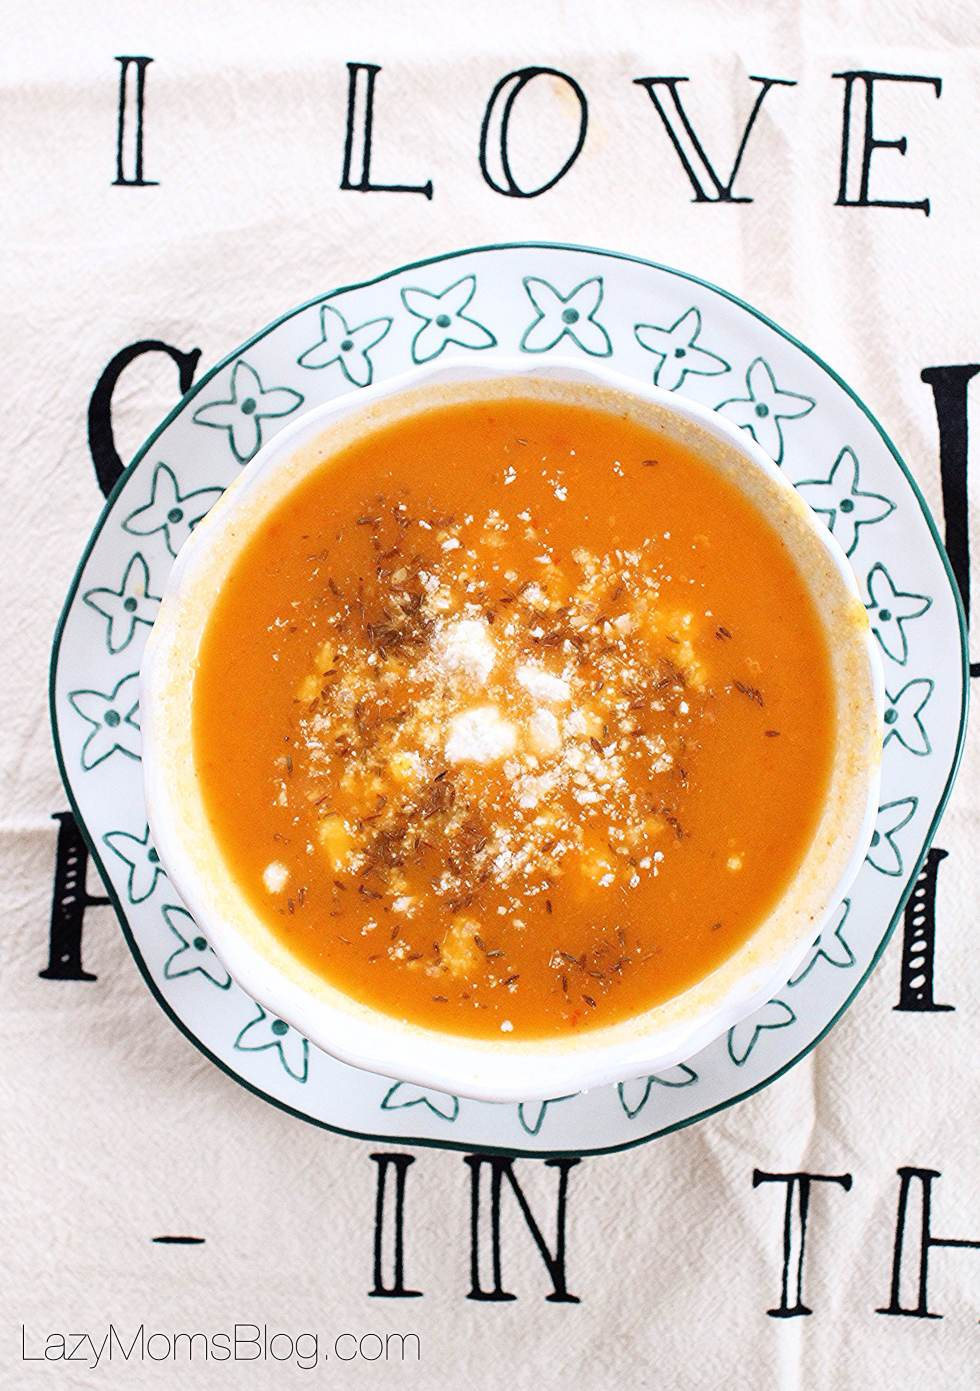 roasted pepper and peanut squash soup